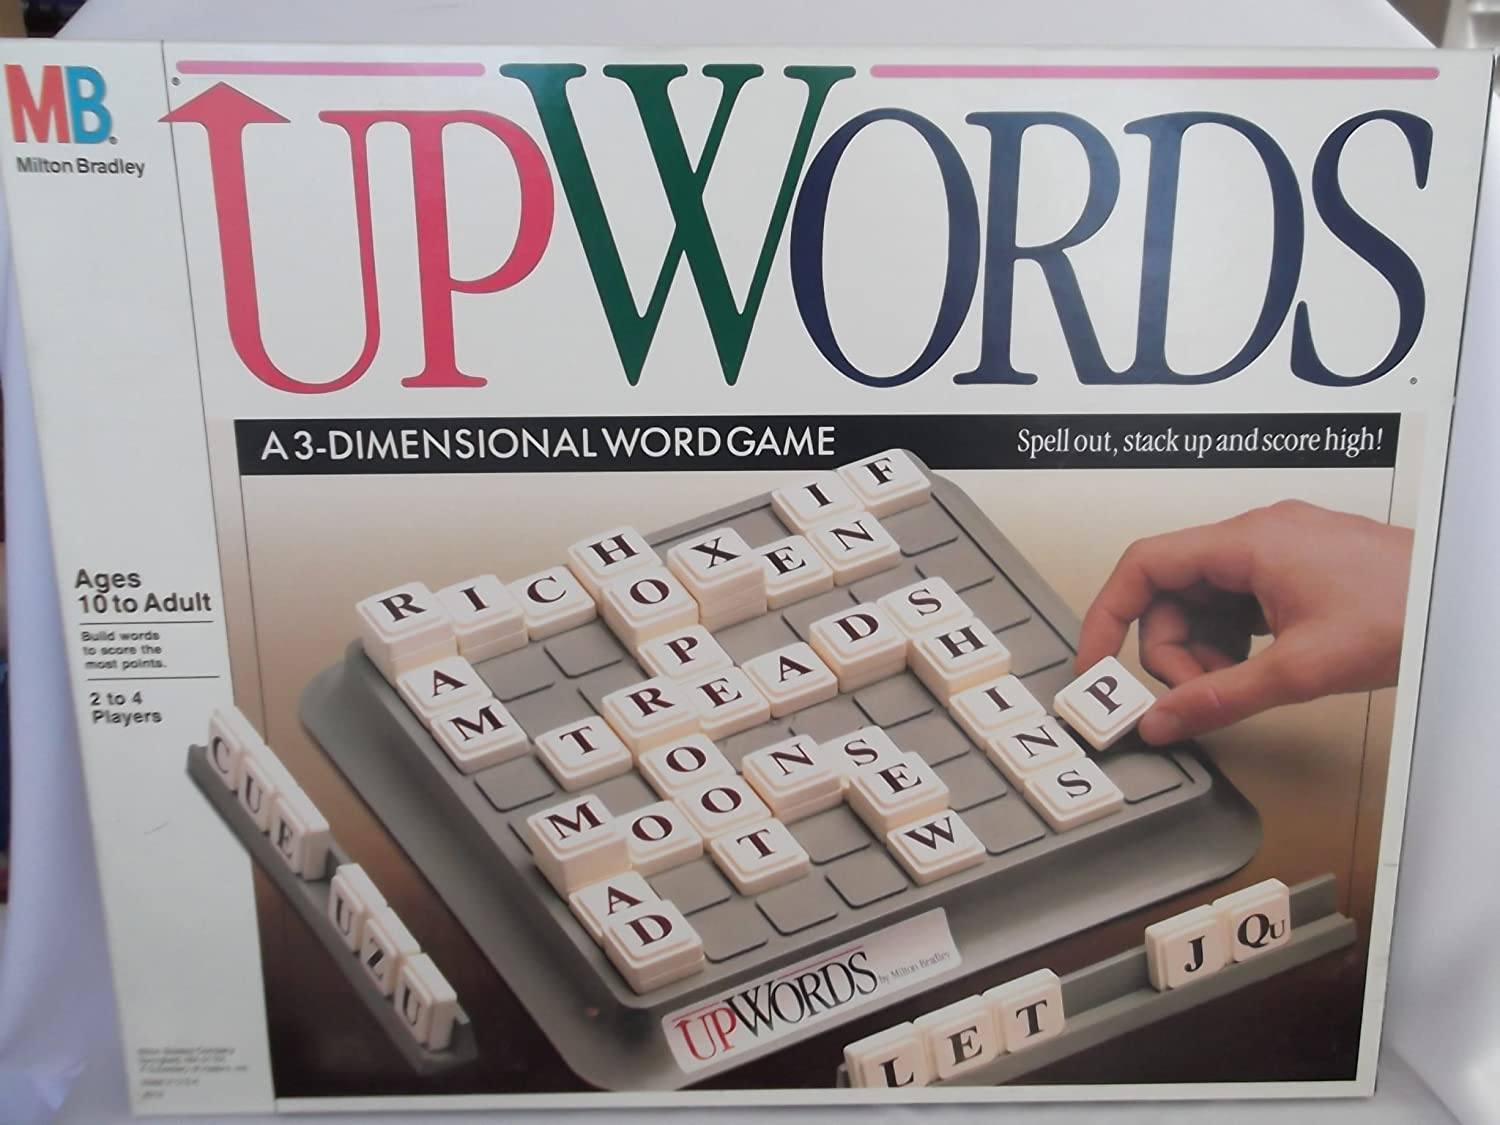 Amazon.com: Upwords: A 3-Dimensional Word Game (1988): Toys & Games